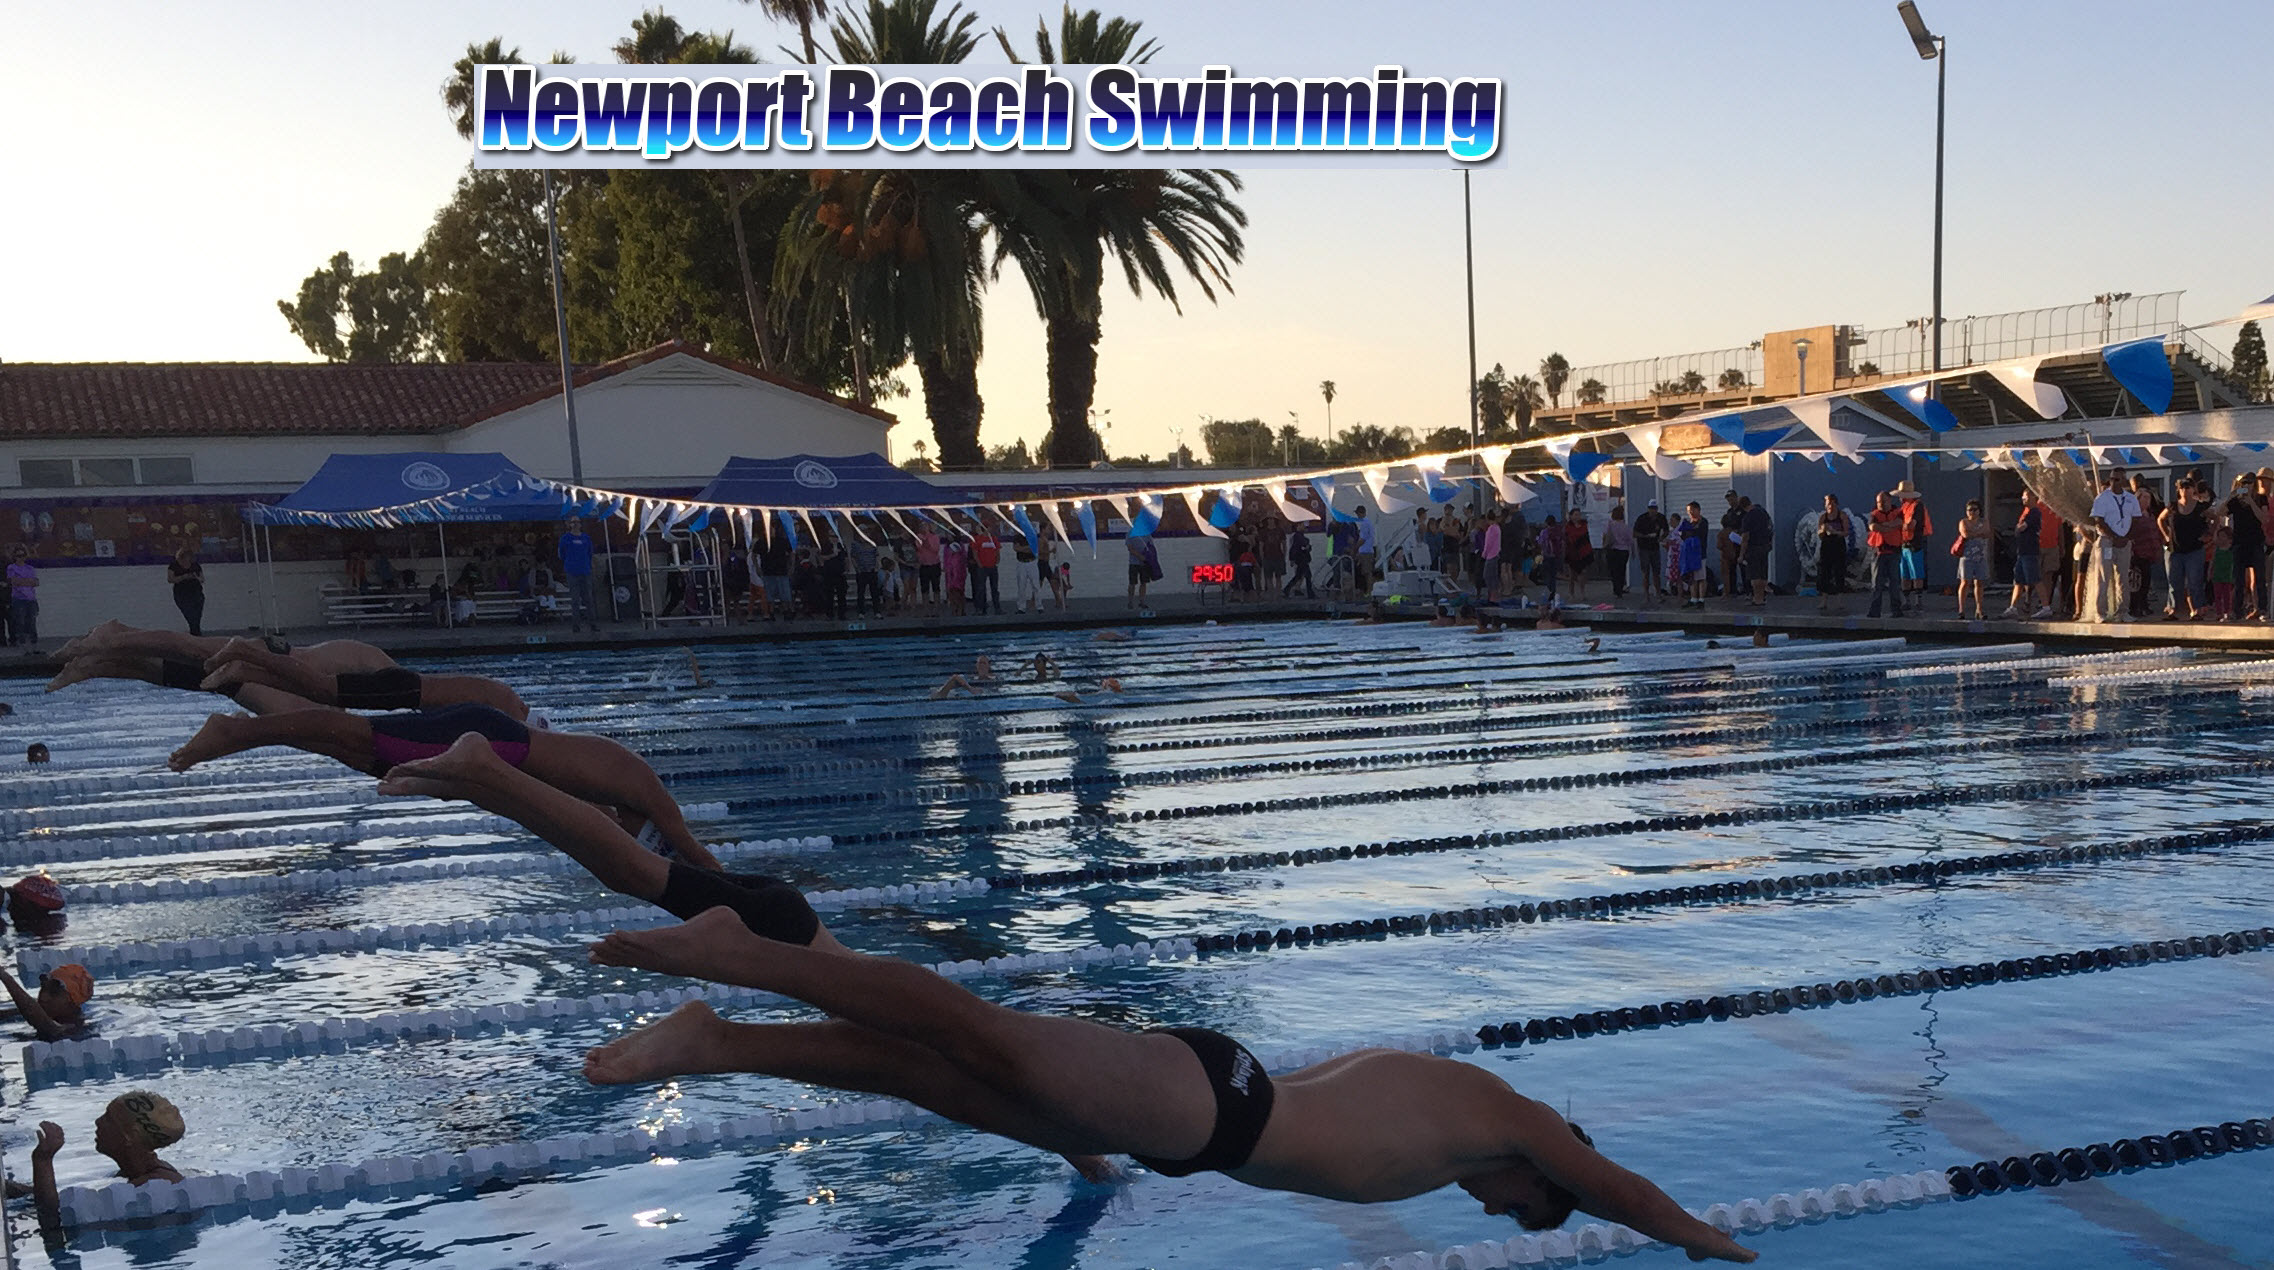 Masters Swim Team Newport Beach